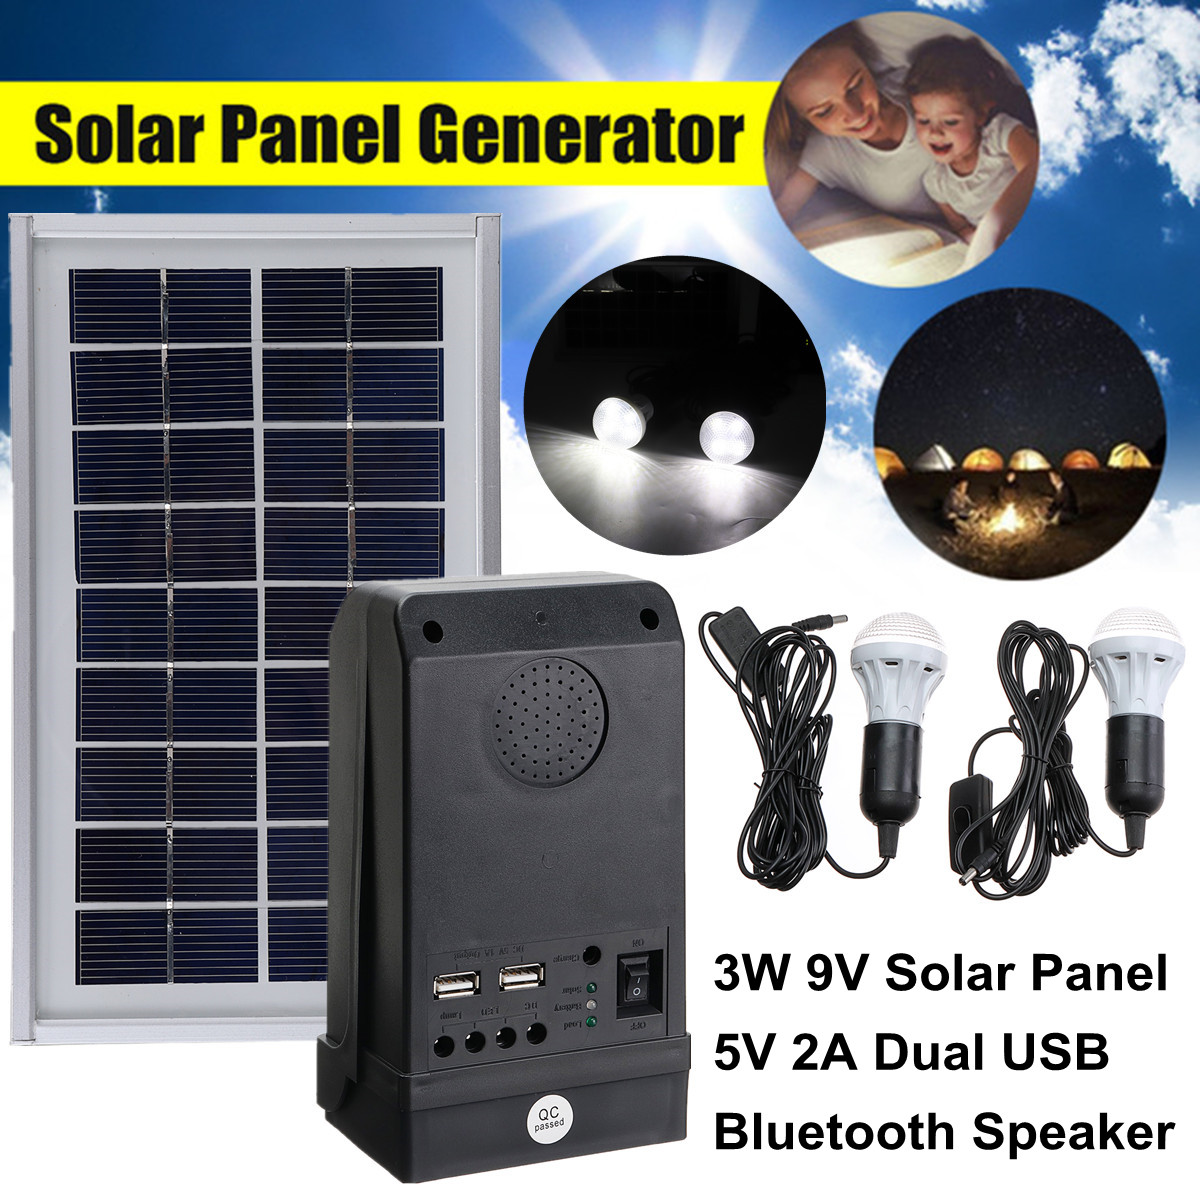 5V 2A USB Charger System with Bluetooth Speaker Solar Panel Power Generator LED Light Reusable Durable Camping Large Capacity diy 5v 2a voltage regulator junction box solar panel charger special kit